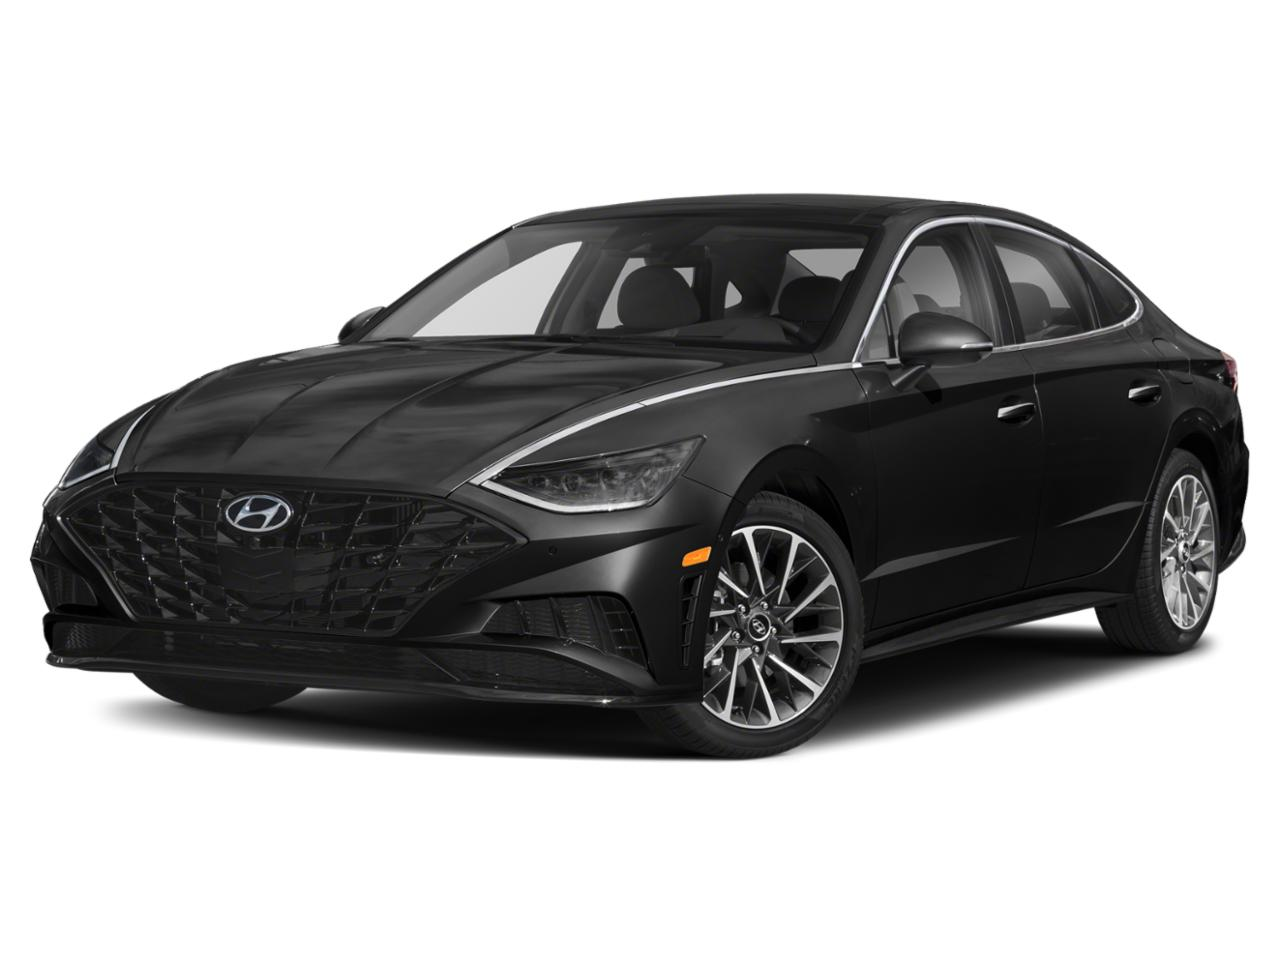 2020 Hyundai Sonata Vehicle Photo in Merrillville, IN 46410